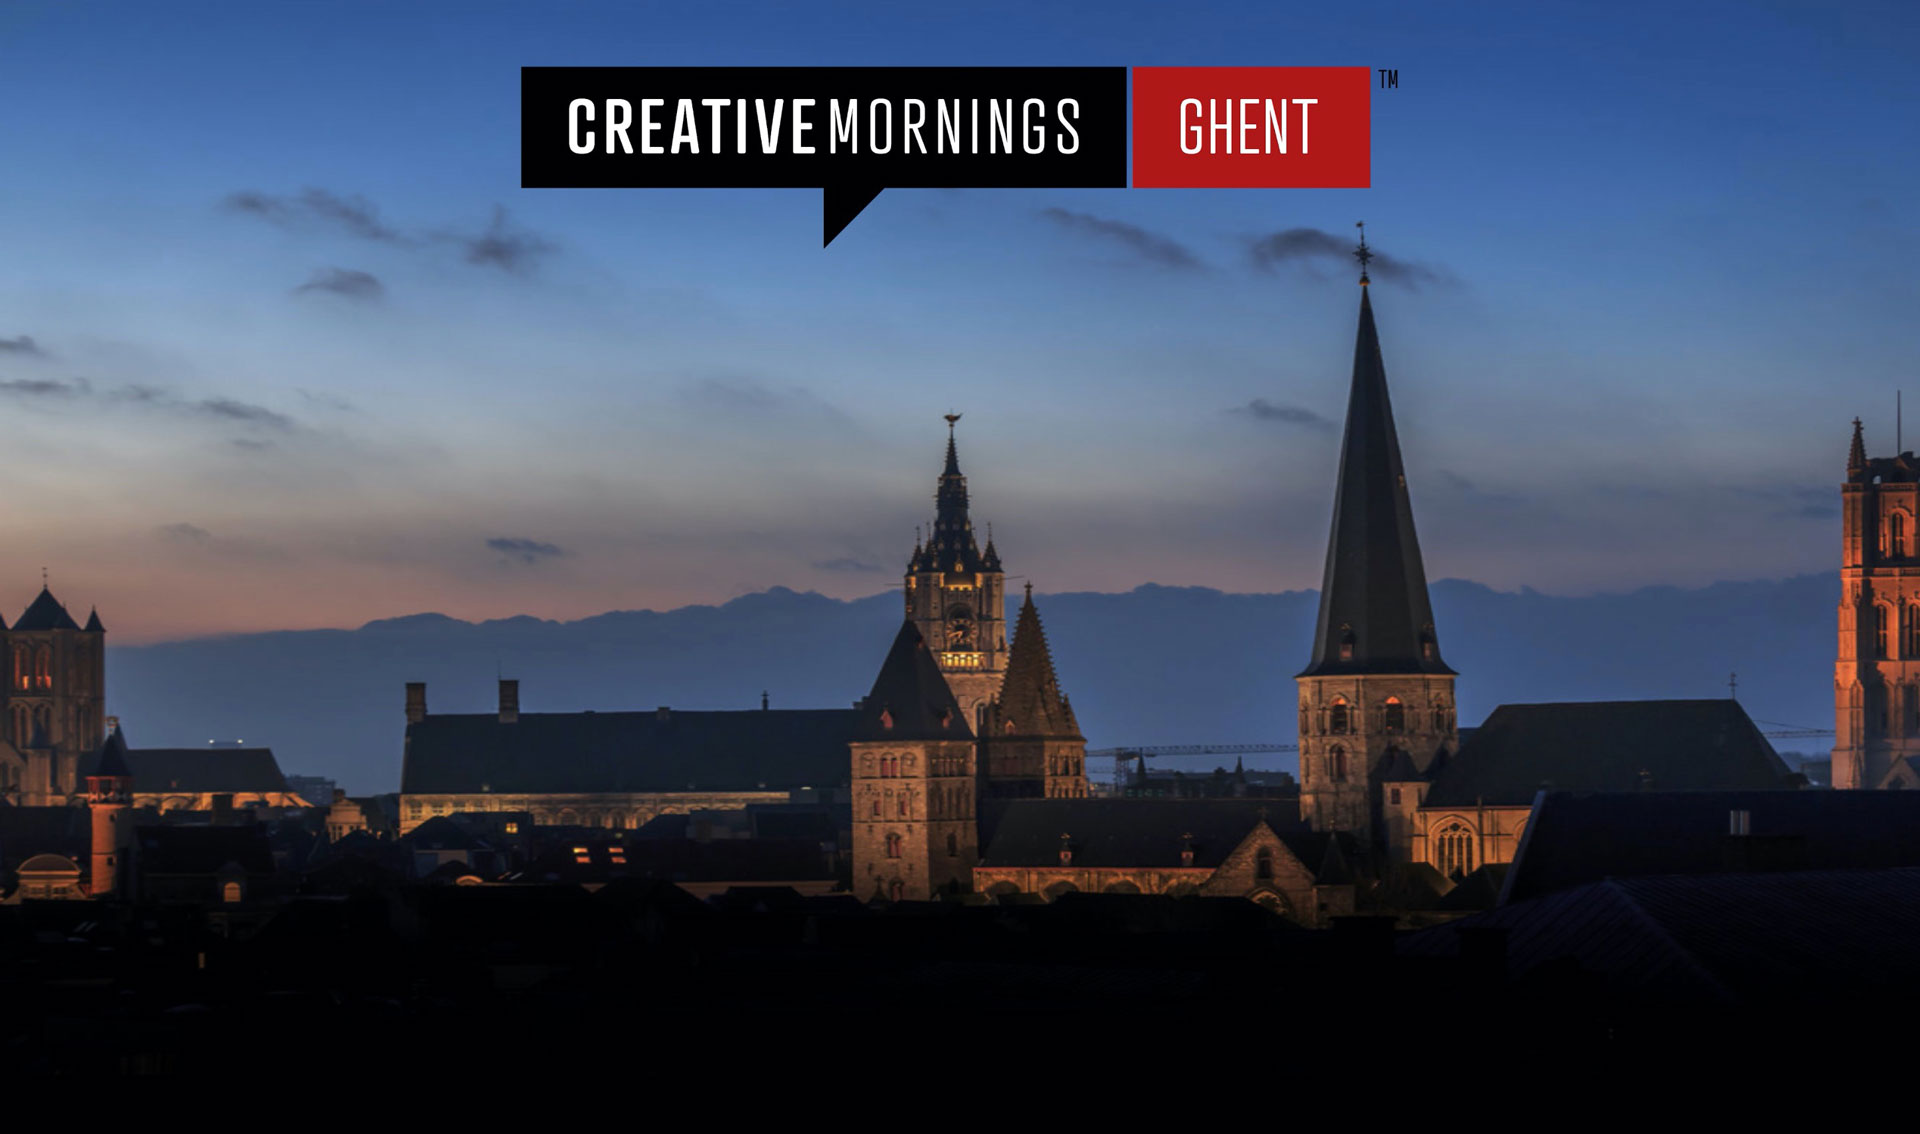 CreativeMornings has arrived to Ghent!